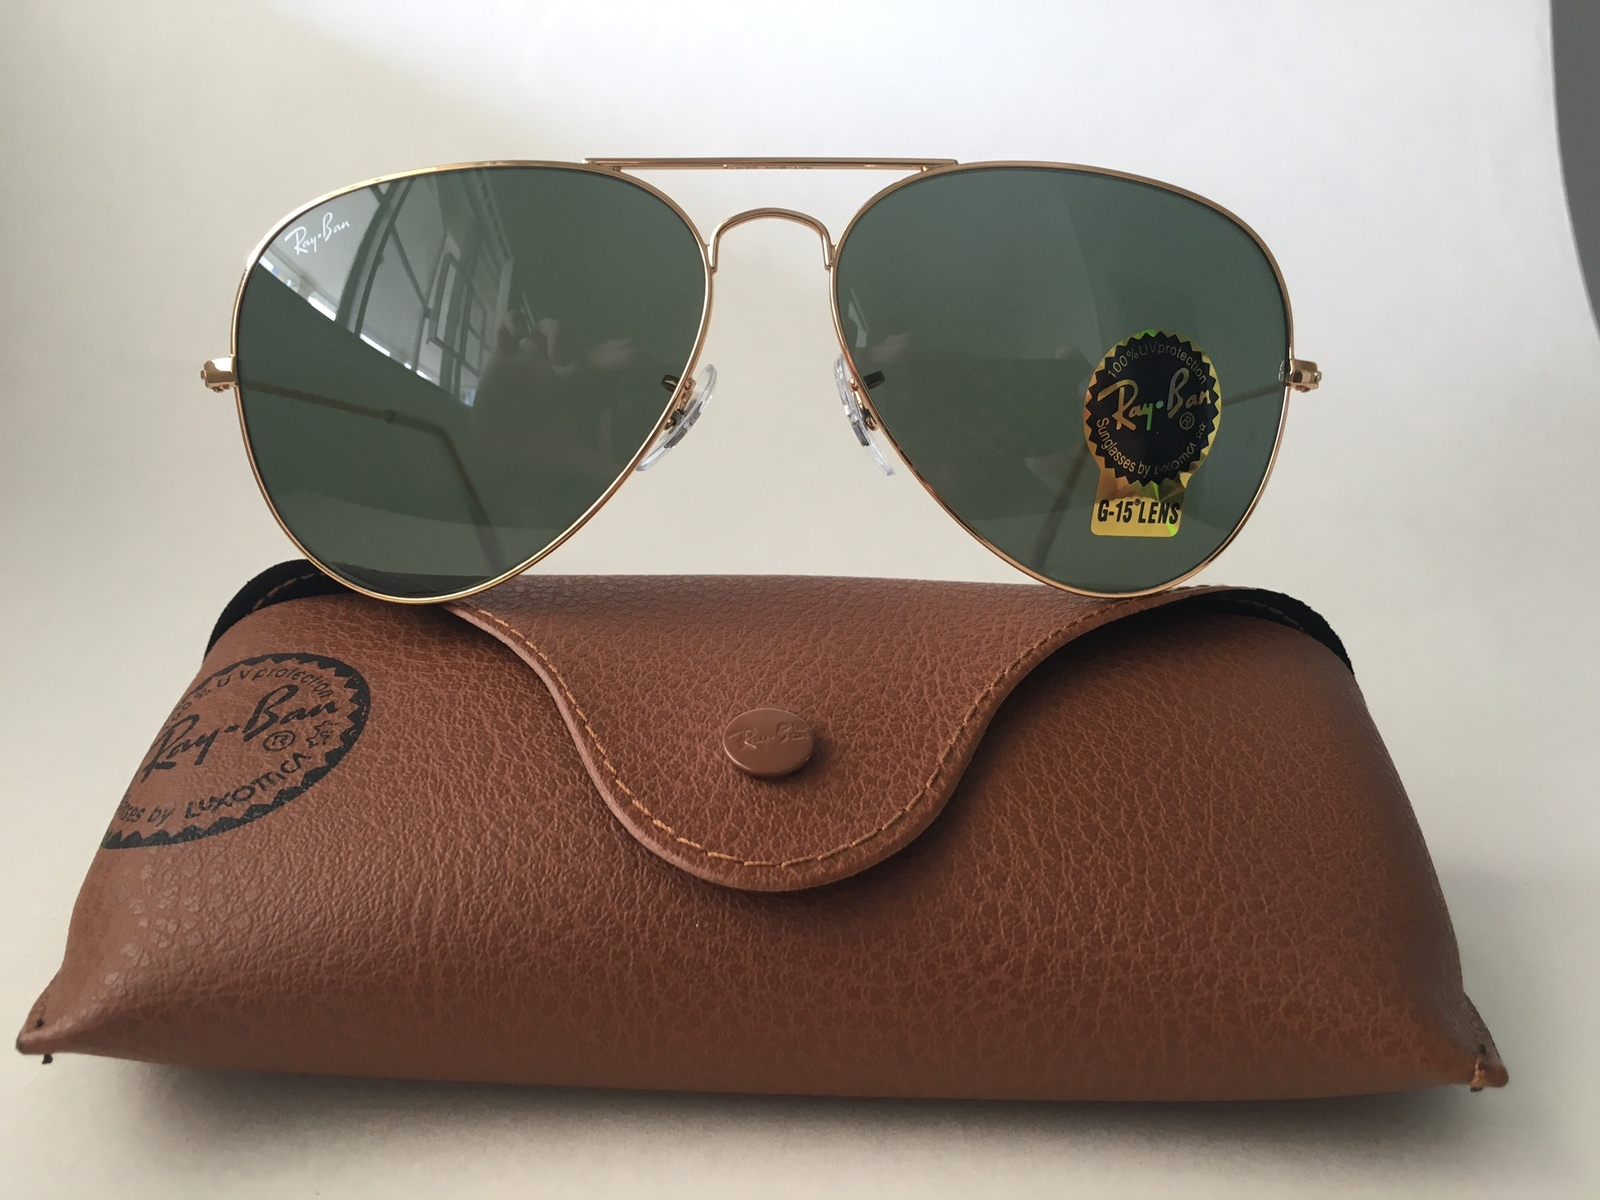 773d772b96a L0205 1. L0205 1. Previous. Ray Ban Aviator RB3025 L0205 58mm Sunglasses  Gold With G-15 Green Lens